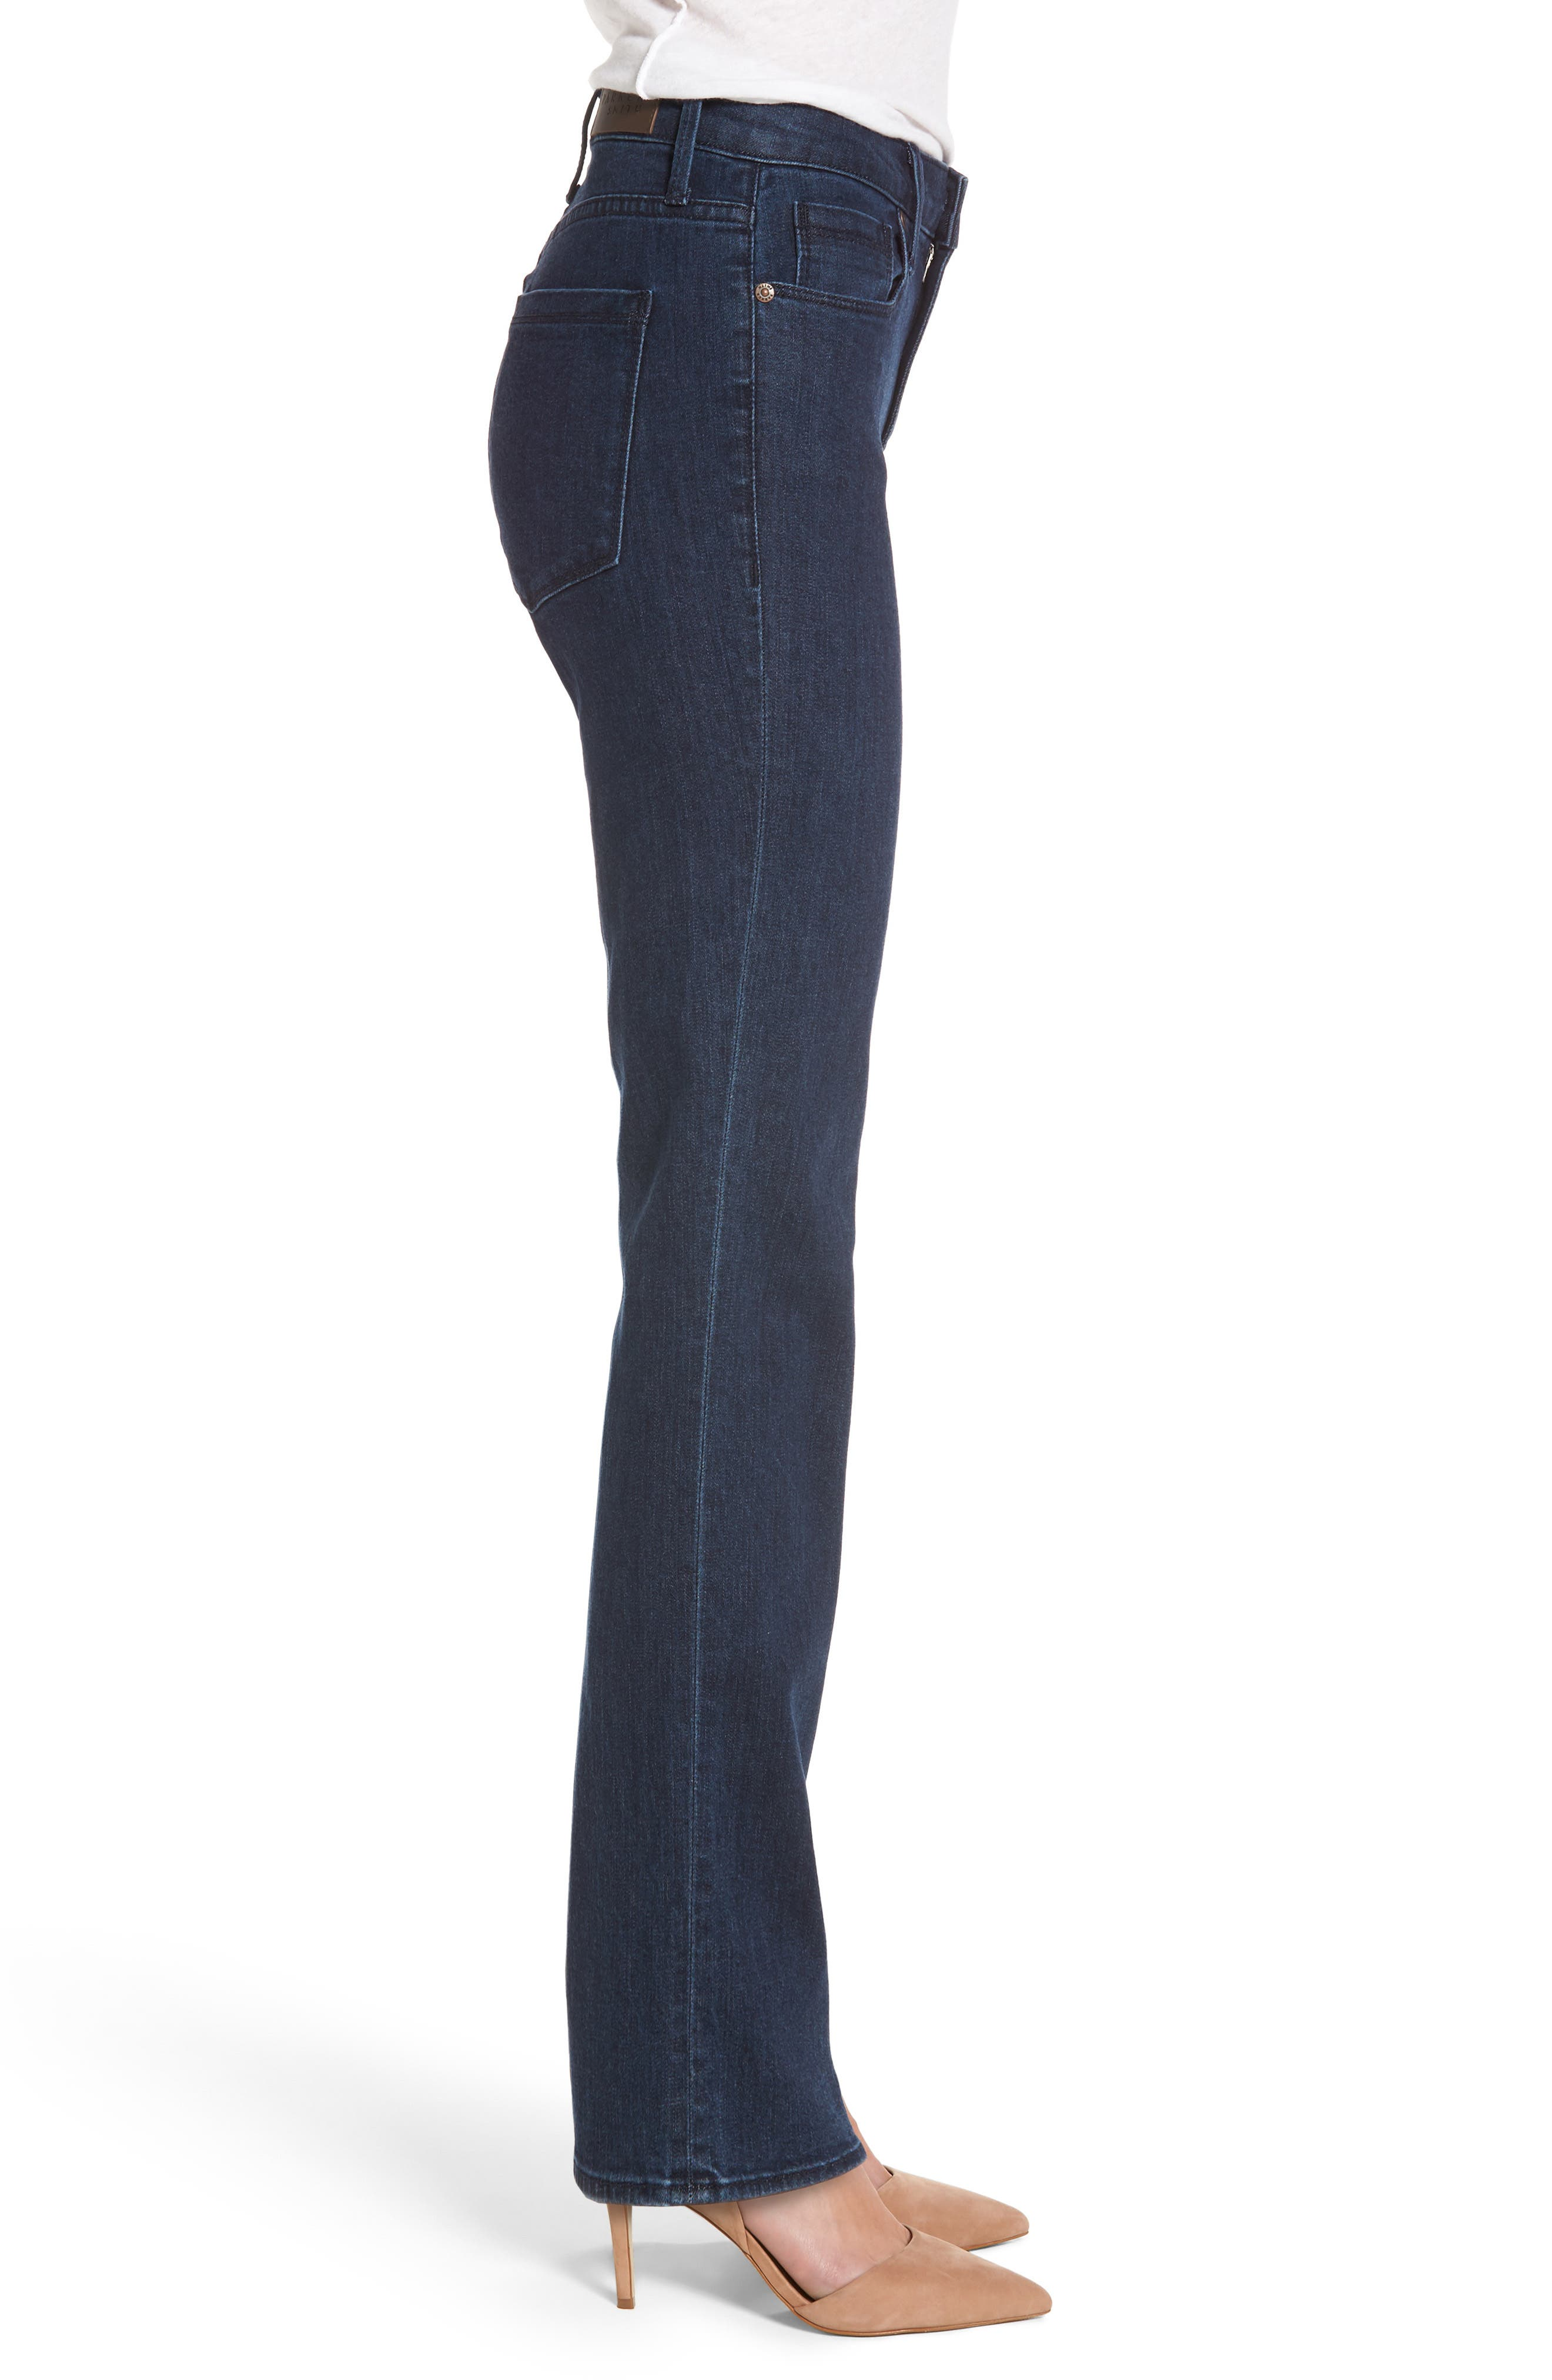 Bombshell Runaround Straight Leg Jeans,                             Alternate thumbnail 3, color,                             405